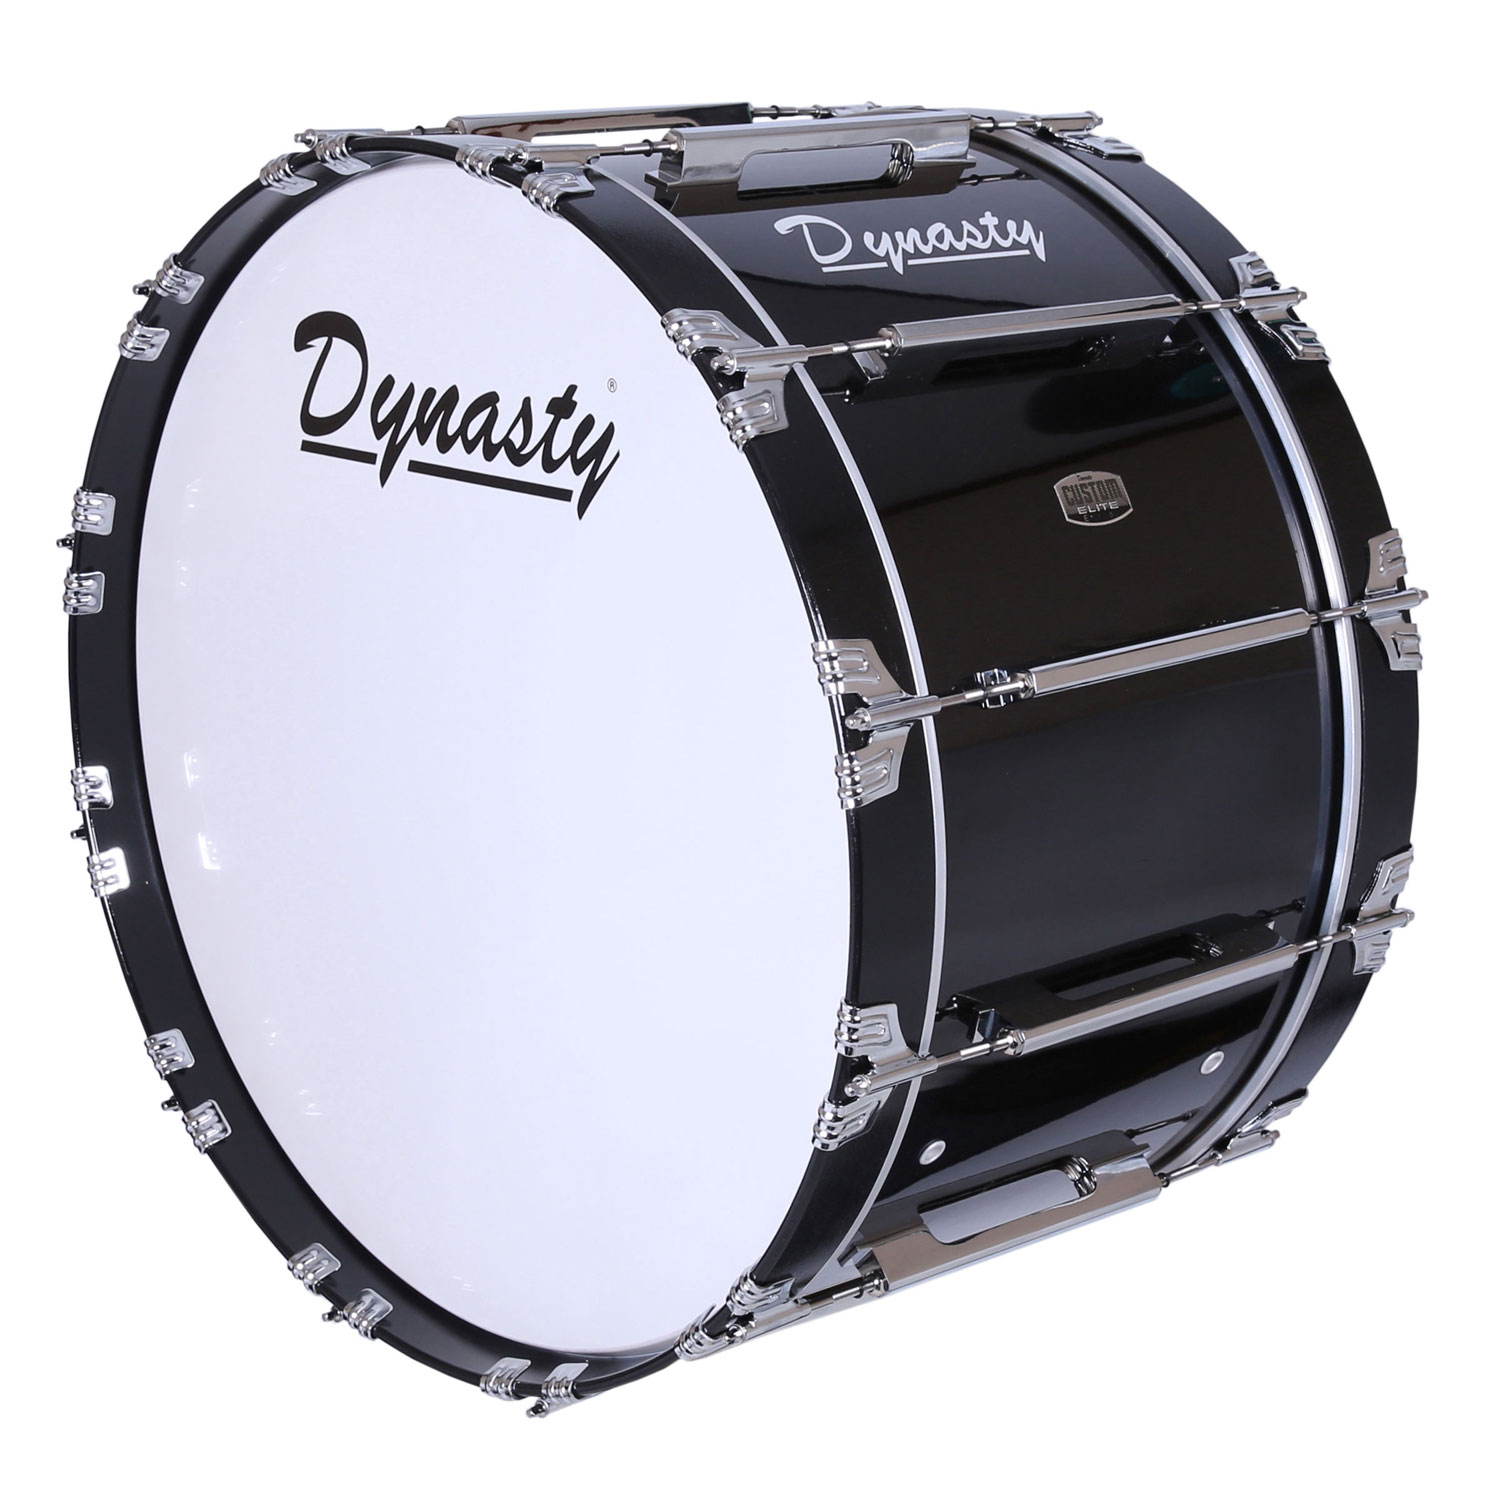 "Dynasty 22"" Custom Elite Marching Bass Drum in Black/Chrome"